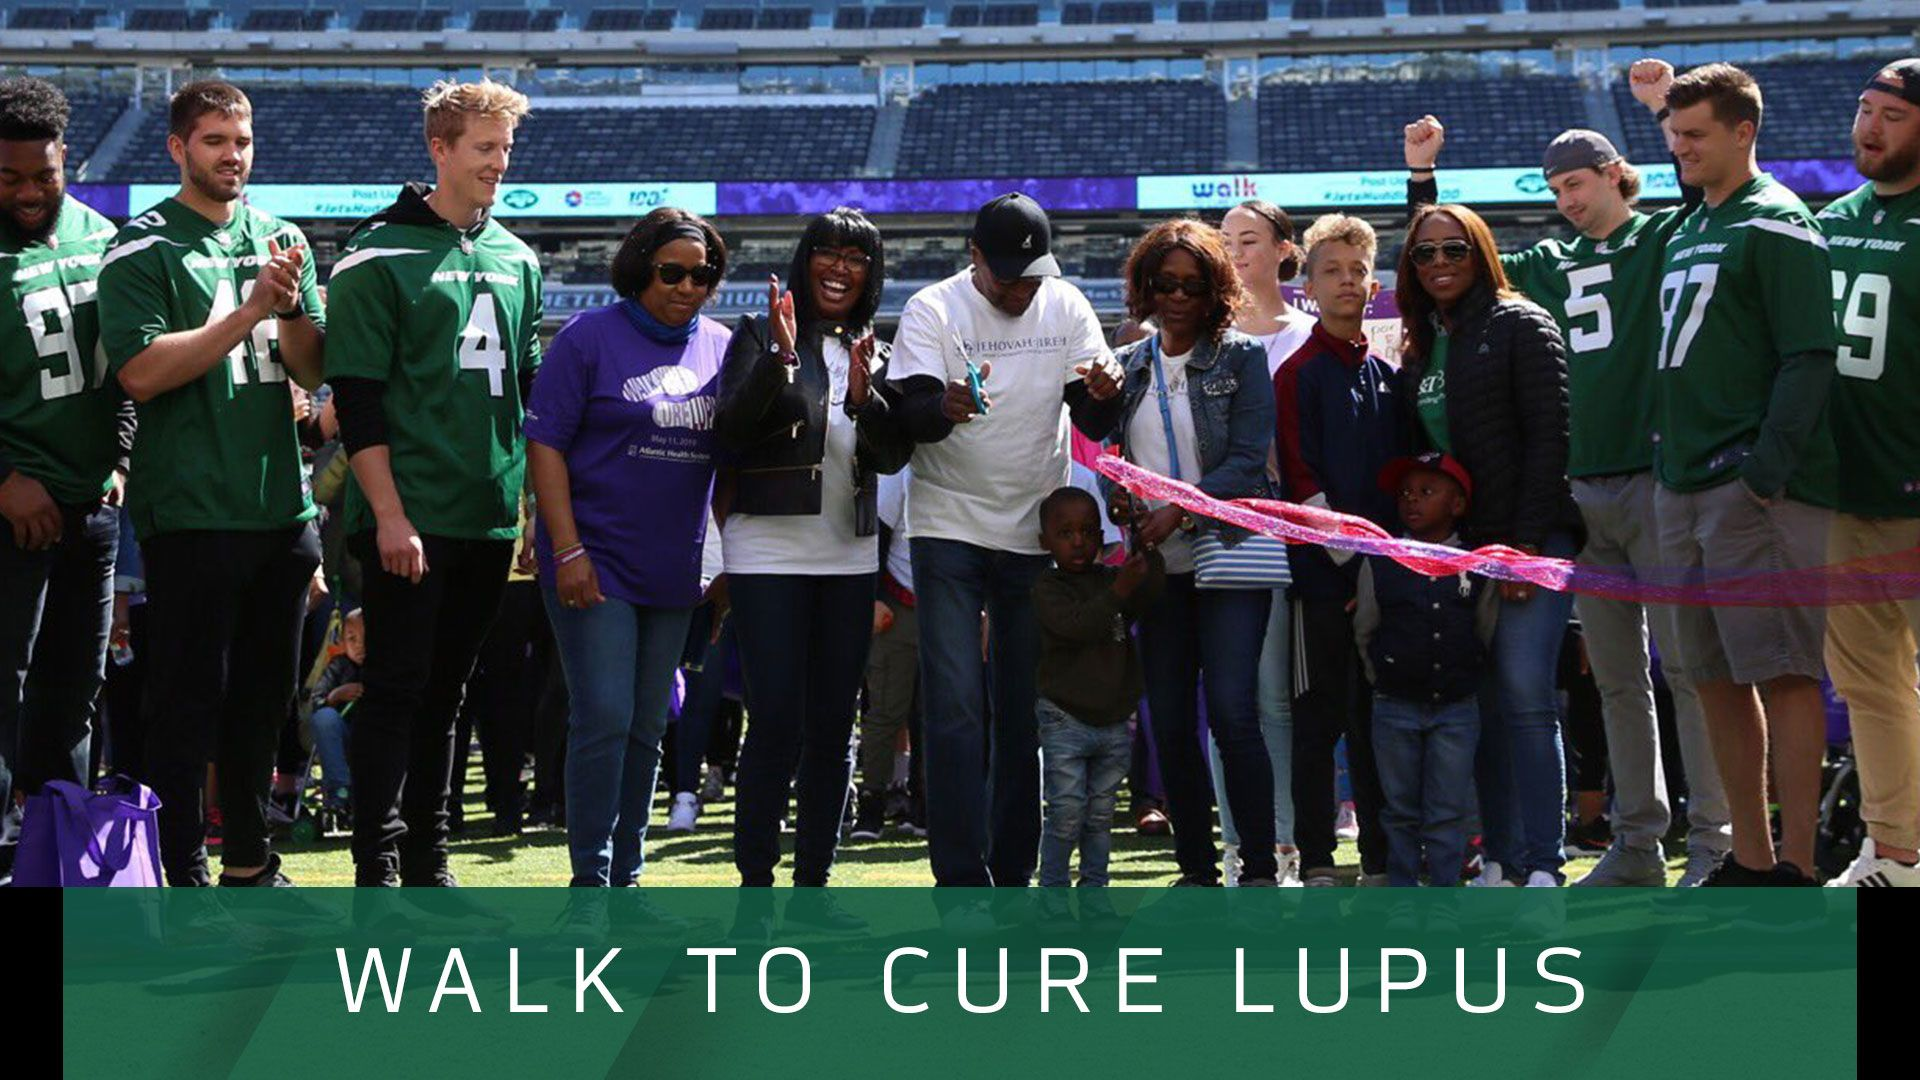 walk-to-cure